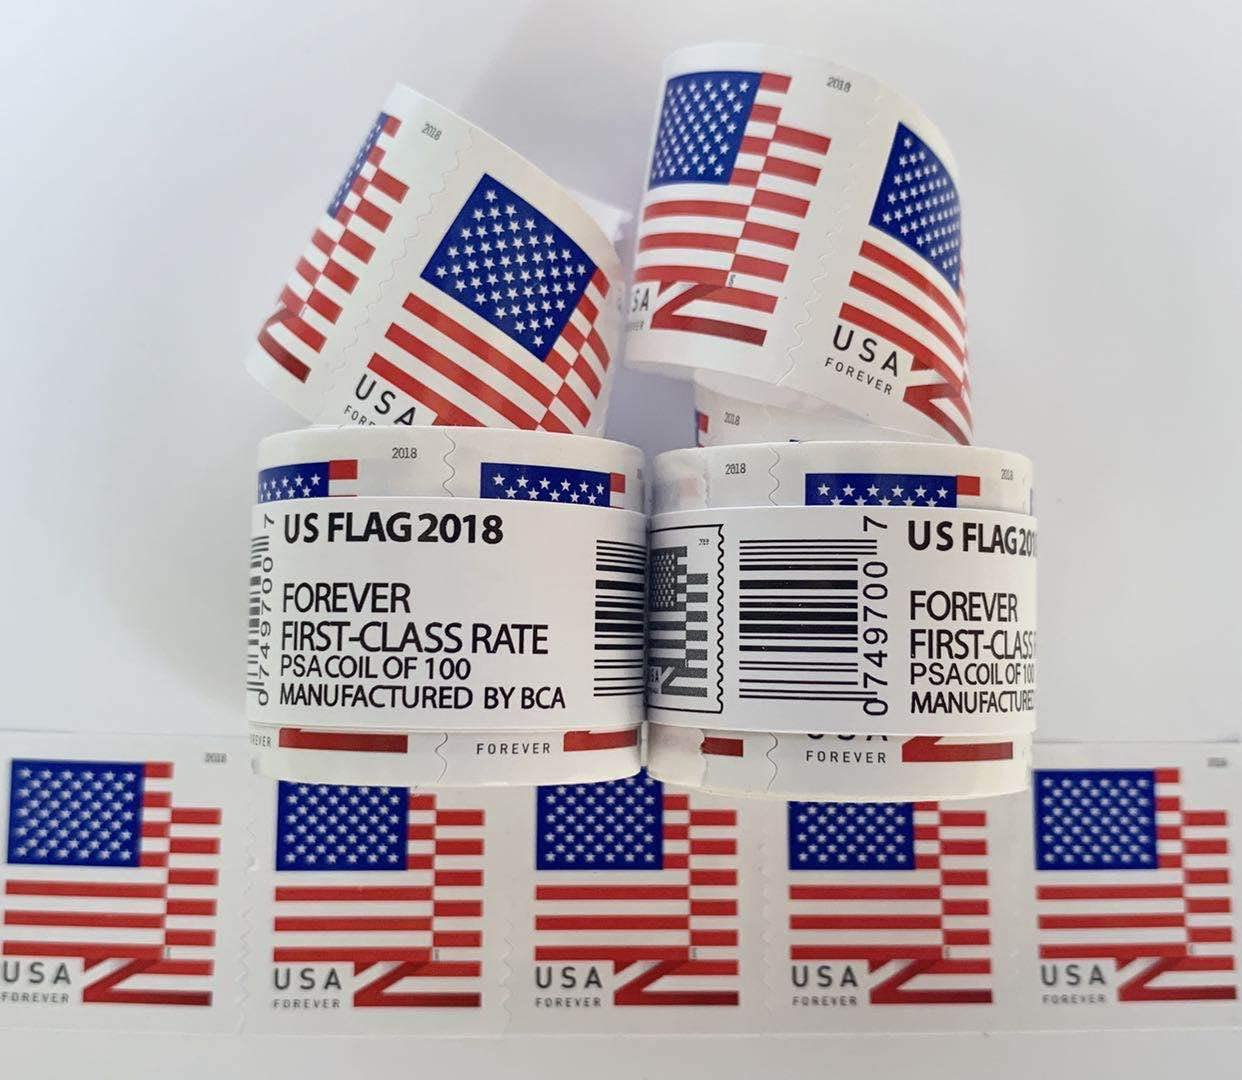 100 Stamps 2018 US Flag Class Forever Stamps,Forever Postage Stamps